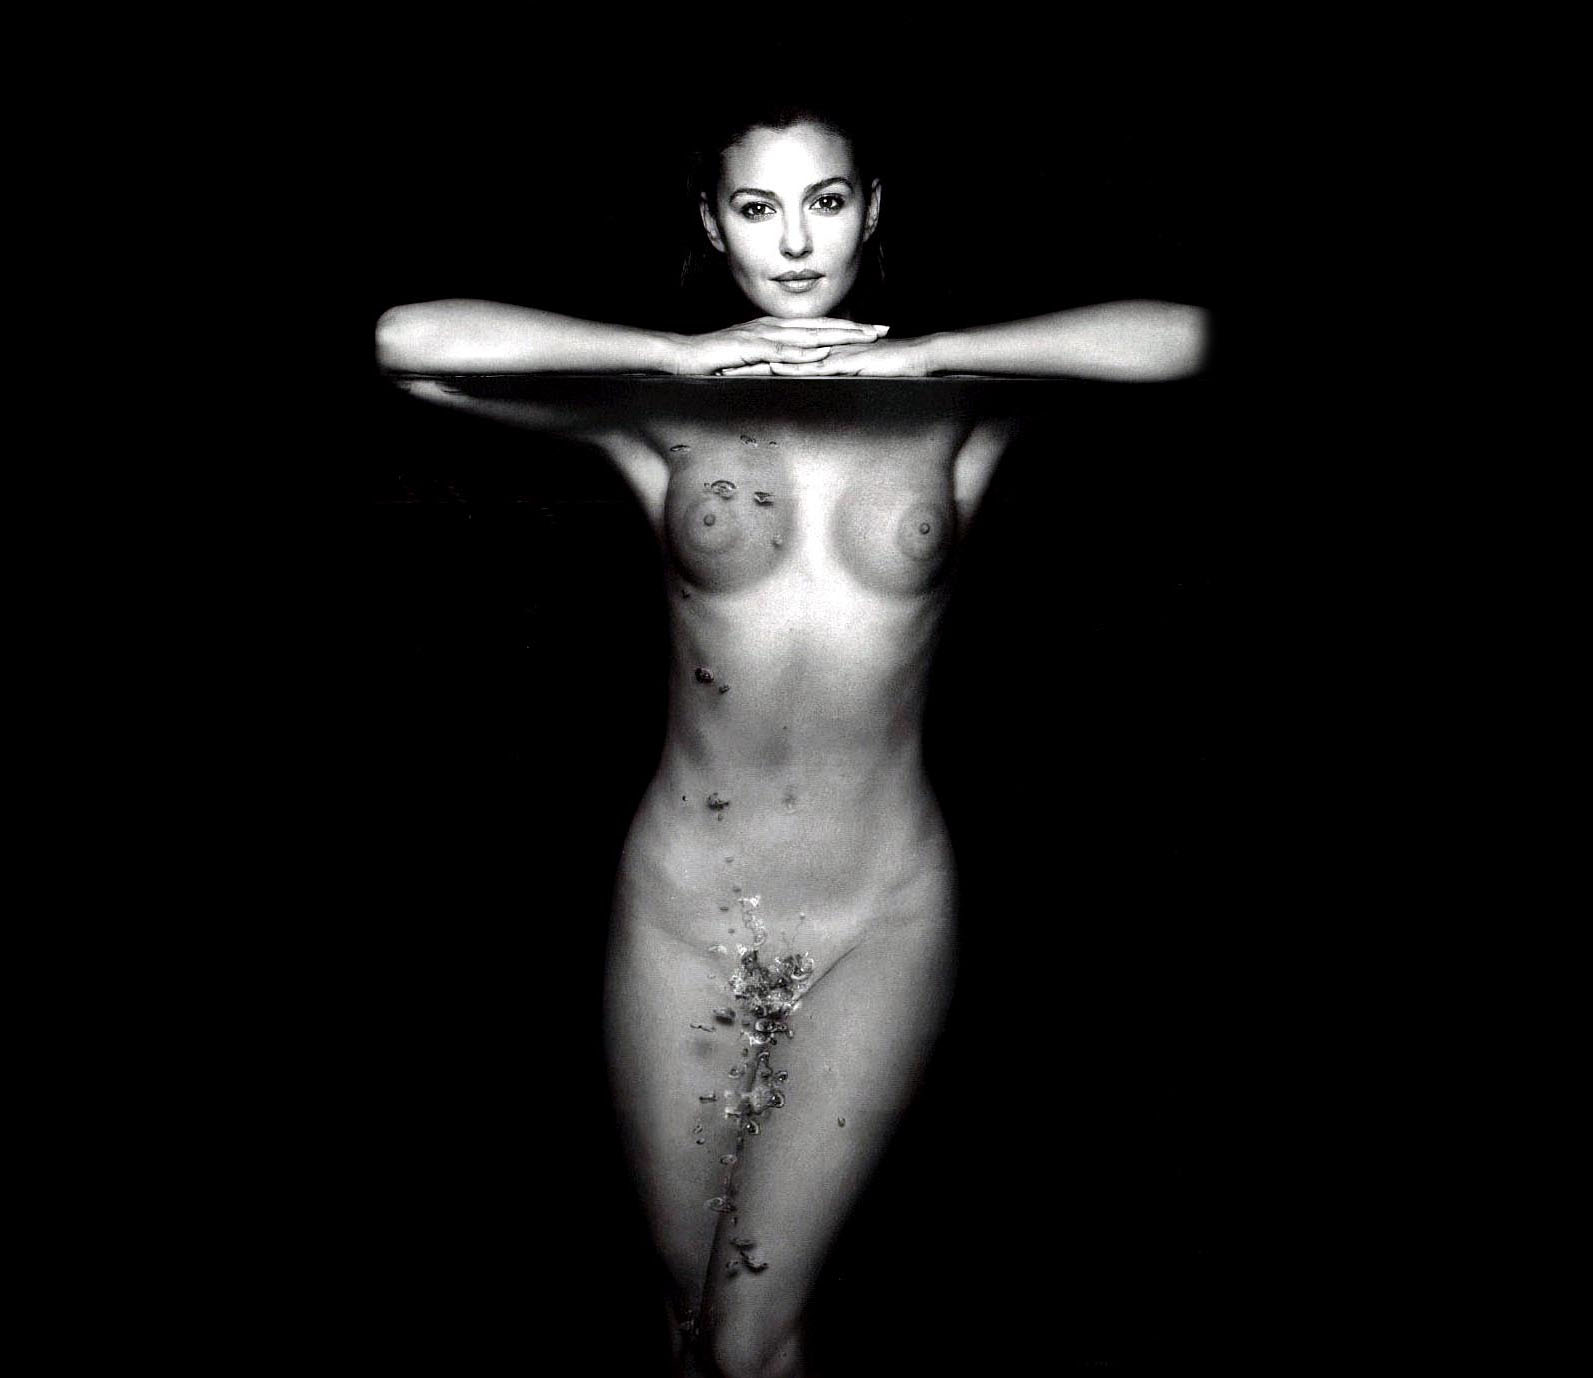 Naked pictures of monica bellucci